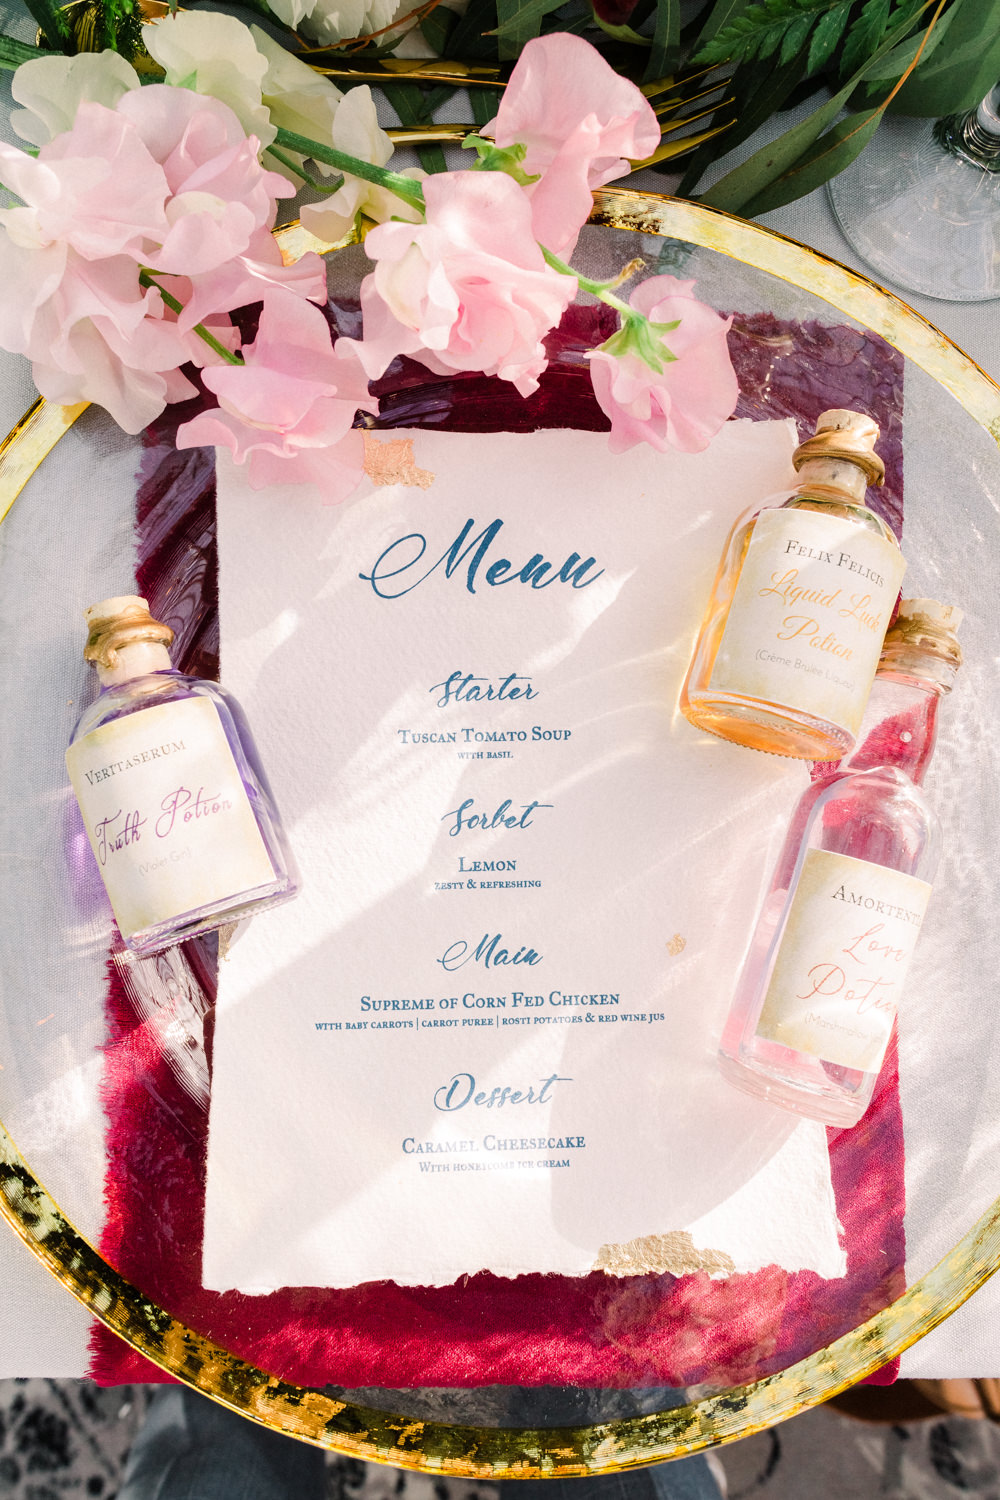 Menu Stationery Calligraphy Plate Place Setting Bottles Gold Red Tortworth Court Wedding Sanshine Photography